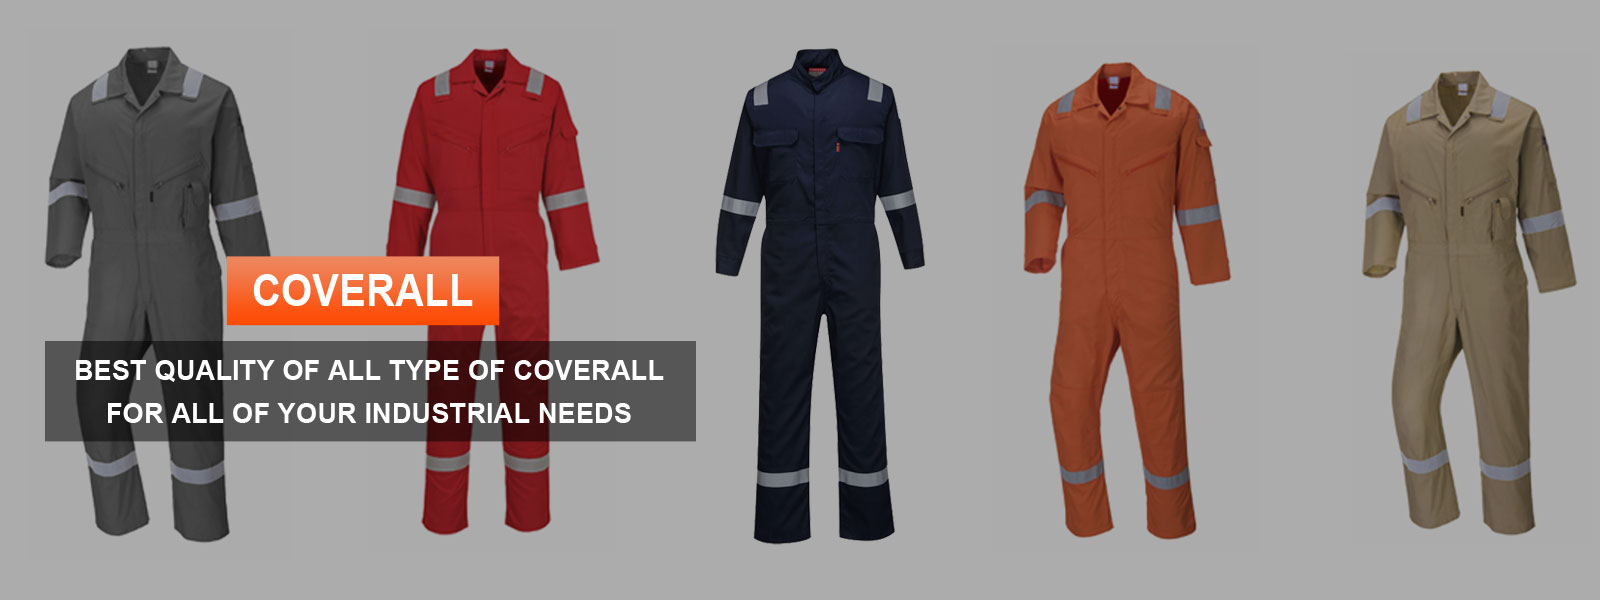 Coverall Manufacturers in Bosnia and Herzegovina